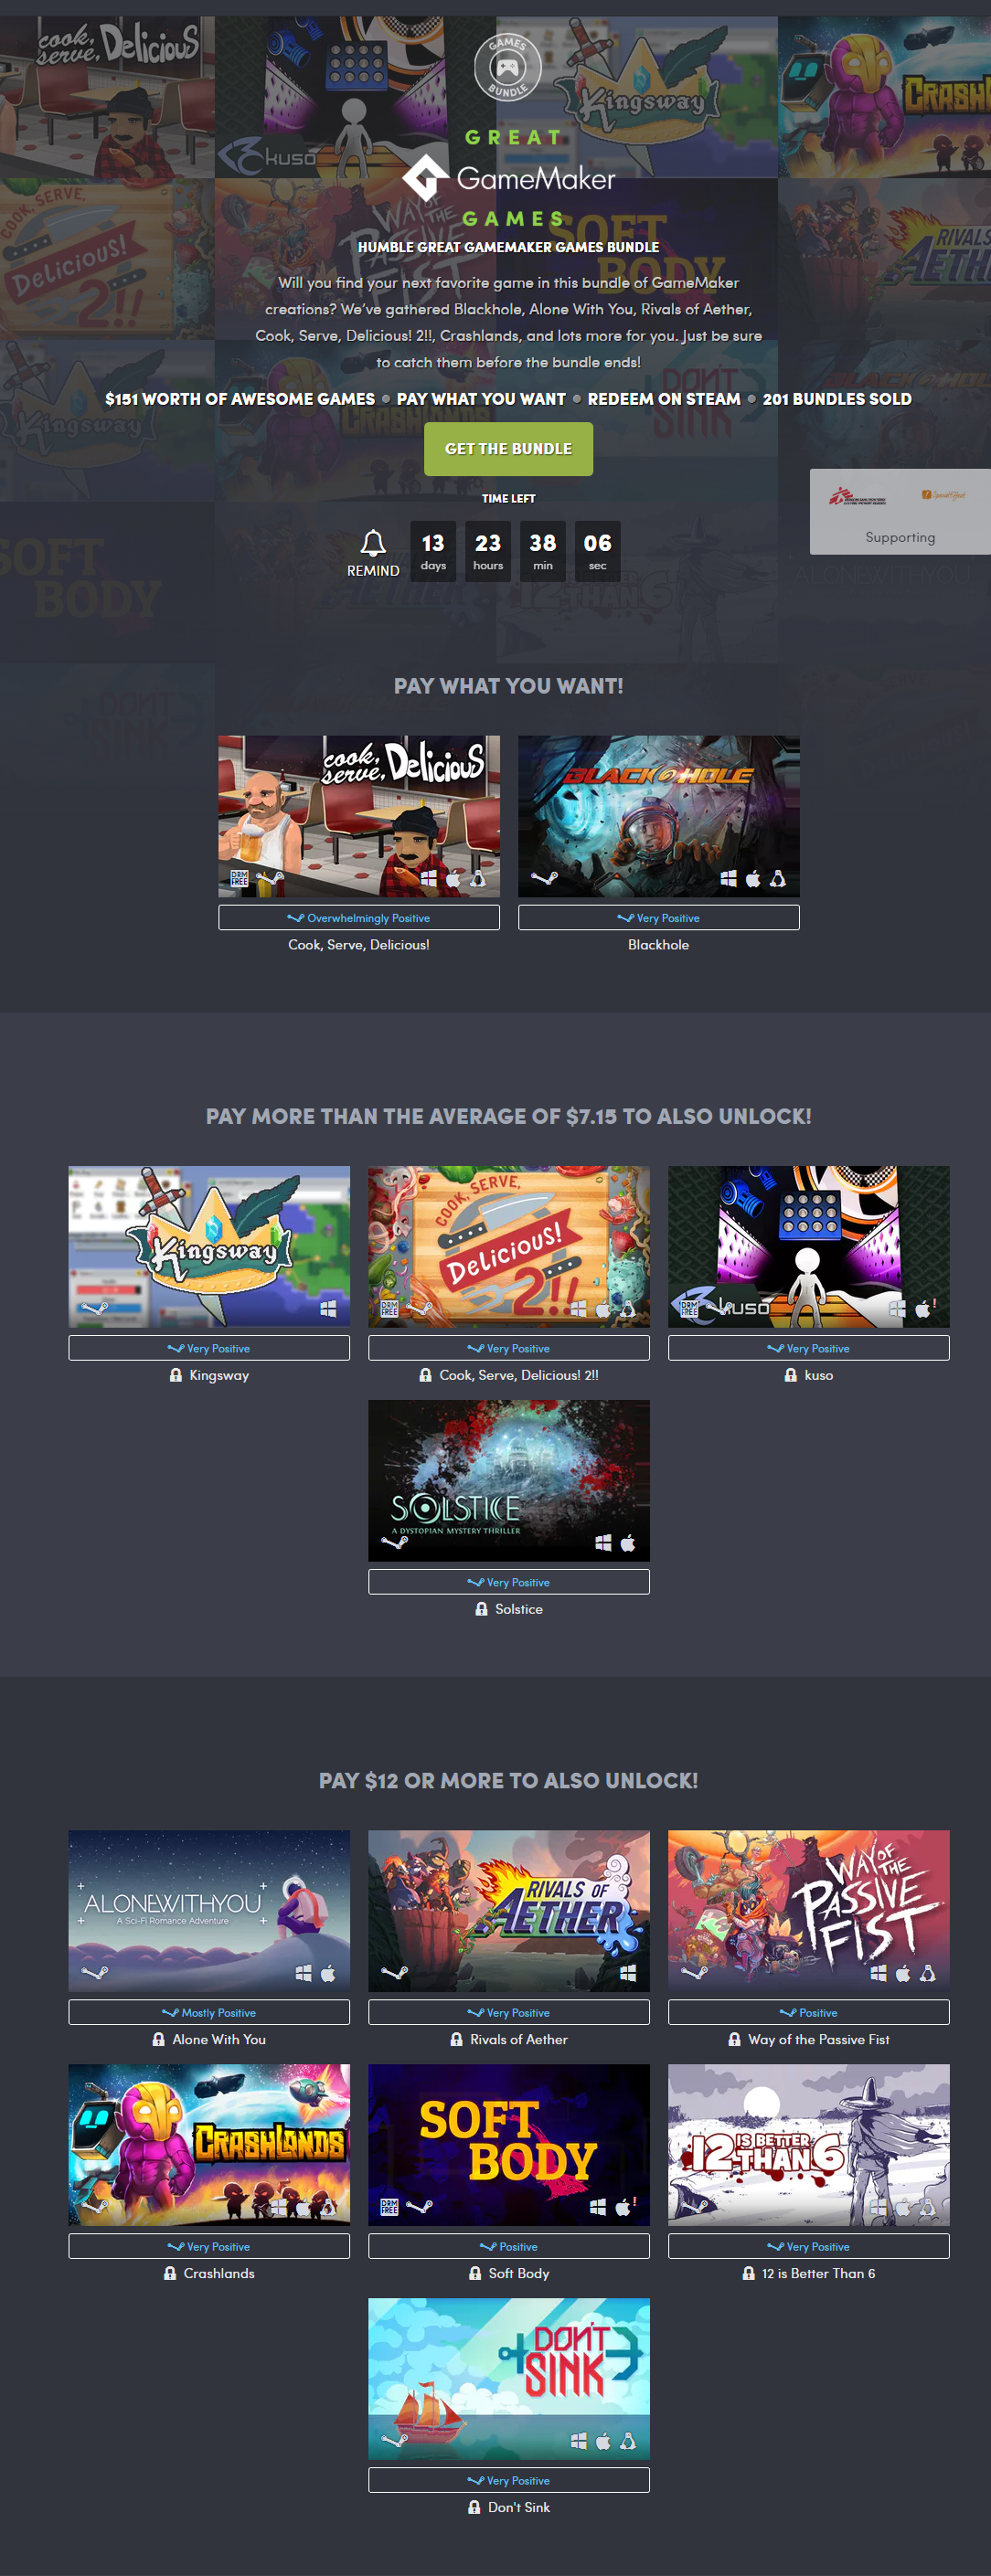 screencapture-humblebundle-games-great-gamemaker-games-bundle-2019-02-13-04_21_52.png